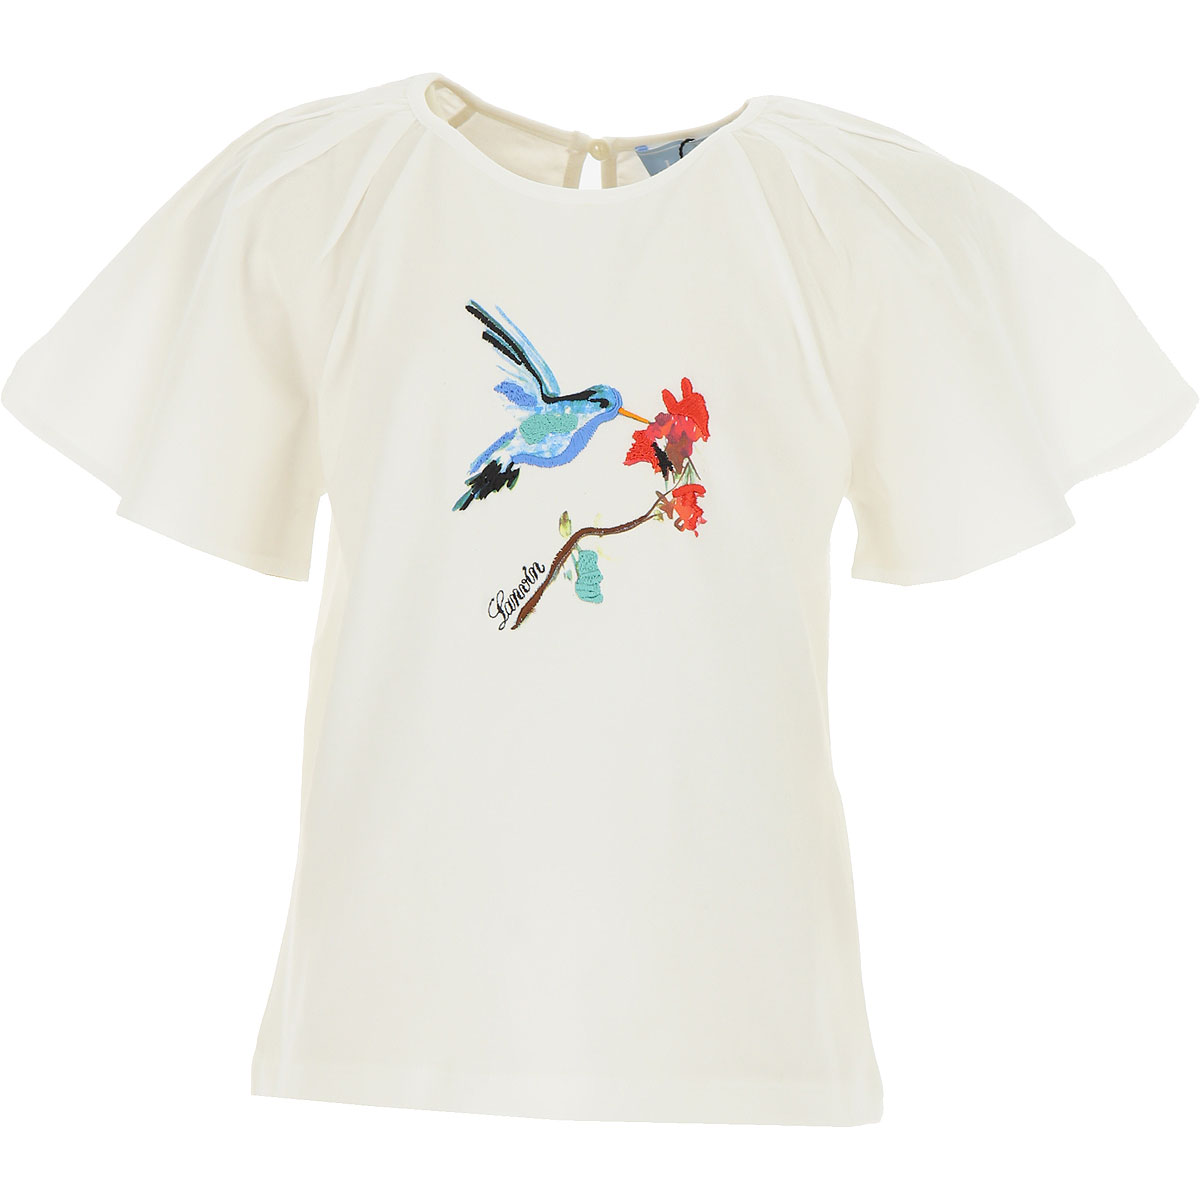 Lanvin Kids T-Shirt for Girls On Sale in Outlet, White, Cotton, 2019, 6Y 8Y